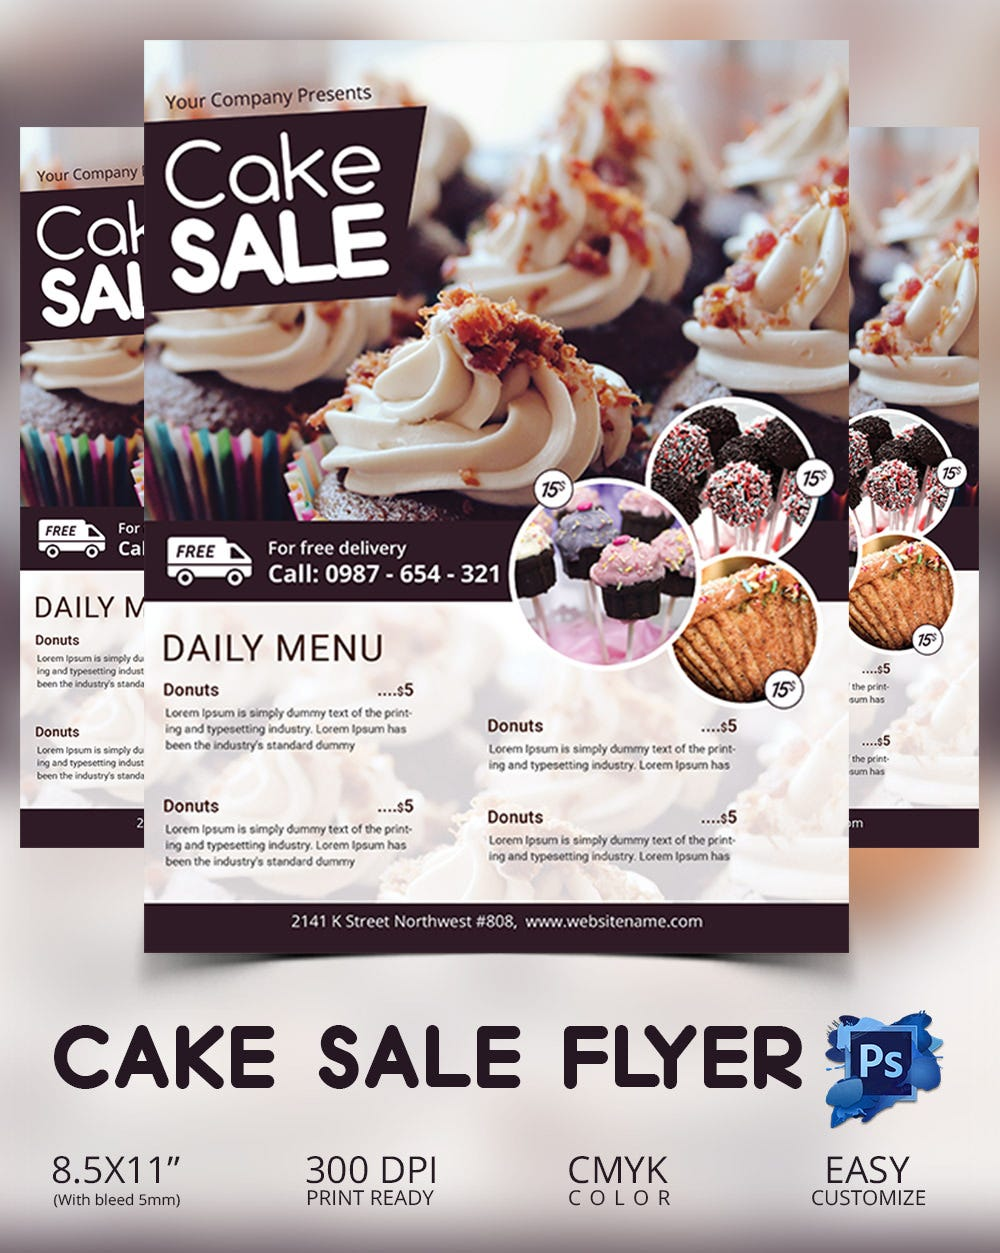 bake sale flyers free flyer designs - HD 1000×1253